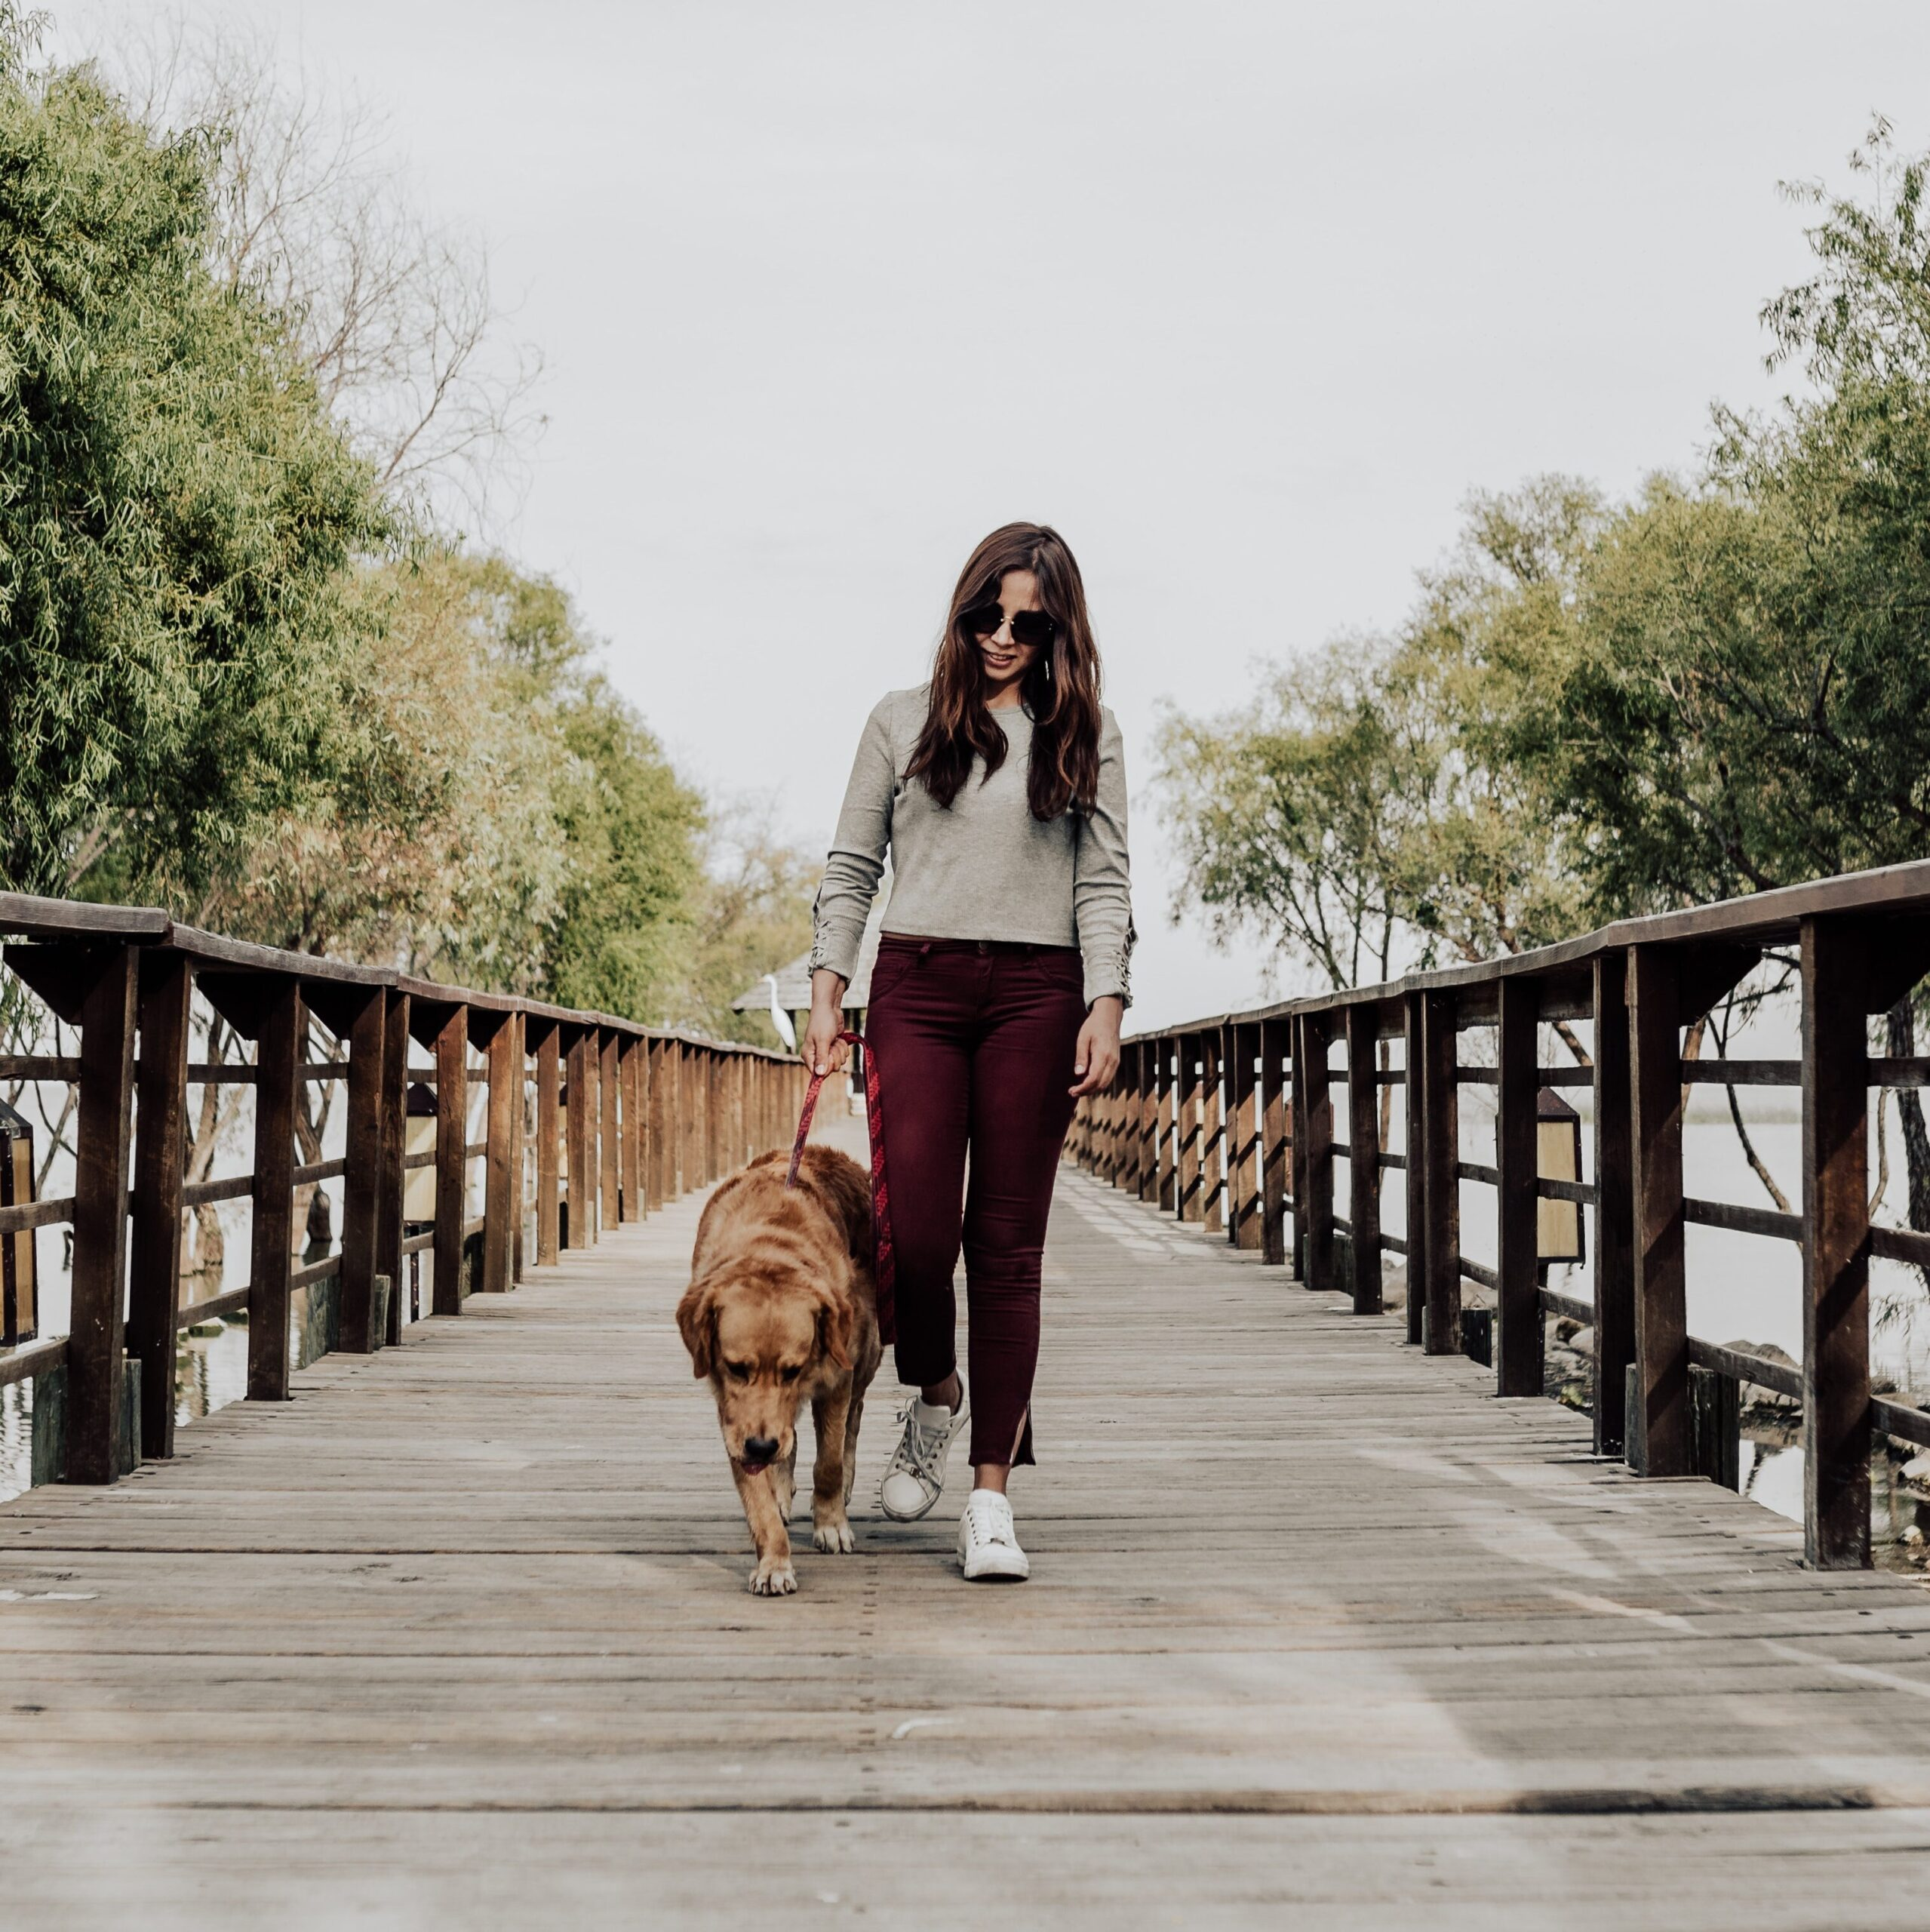 how to make money as a teen - Dog Walking Services